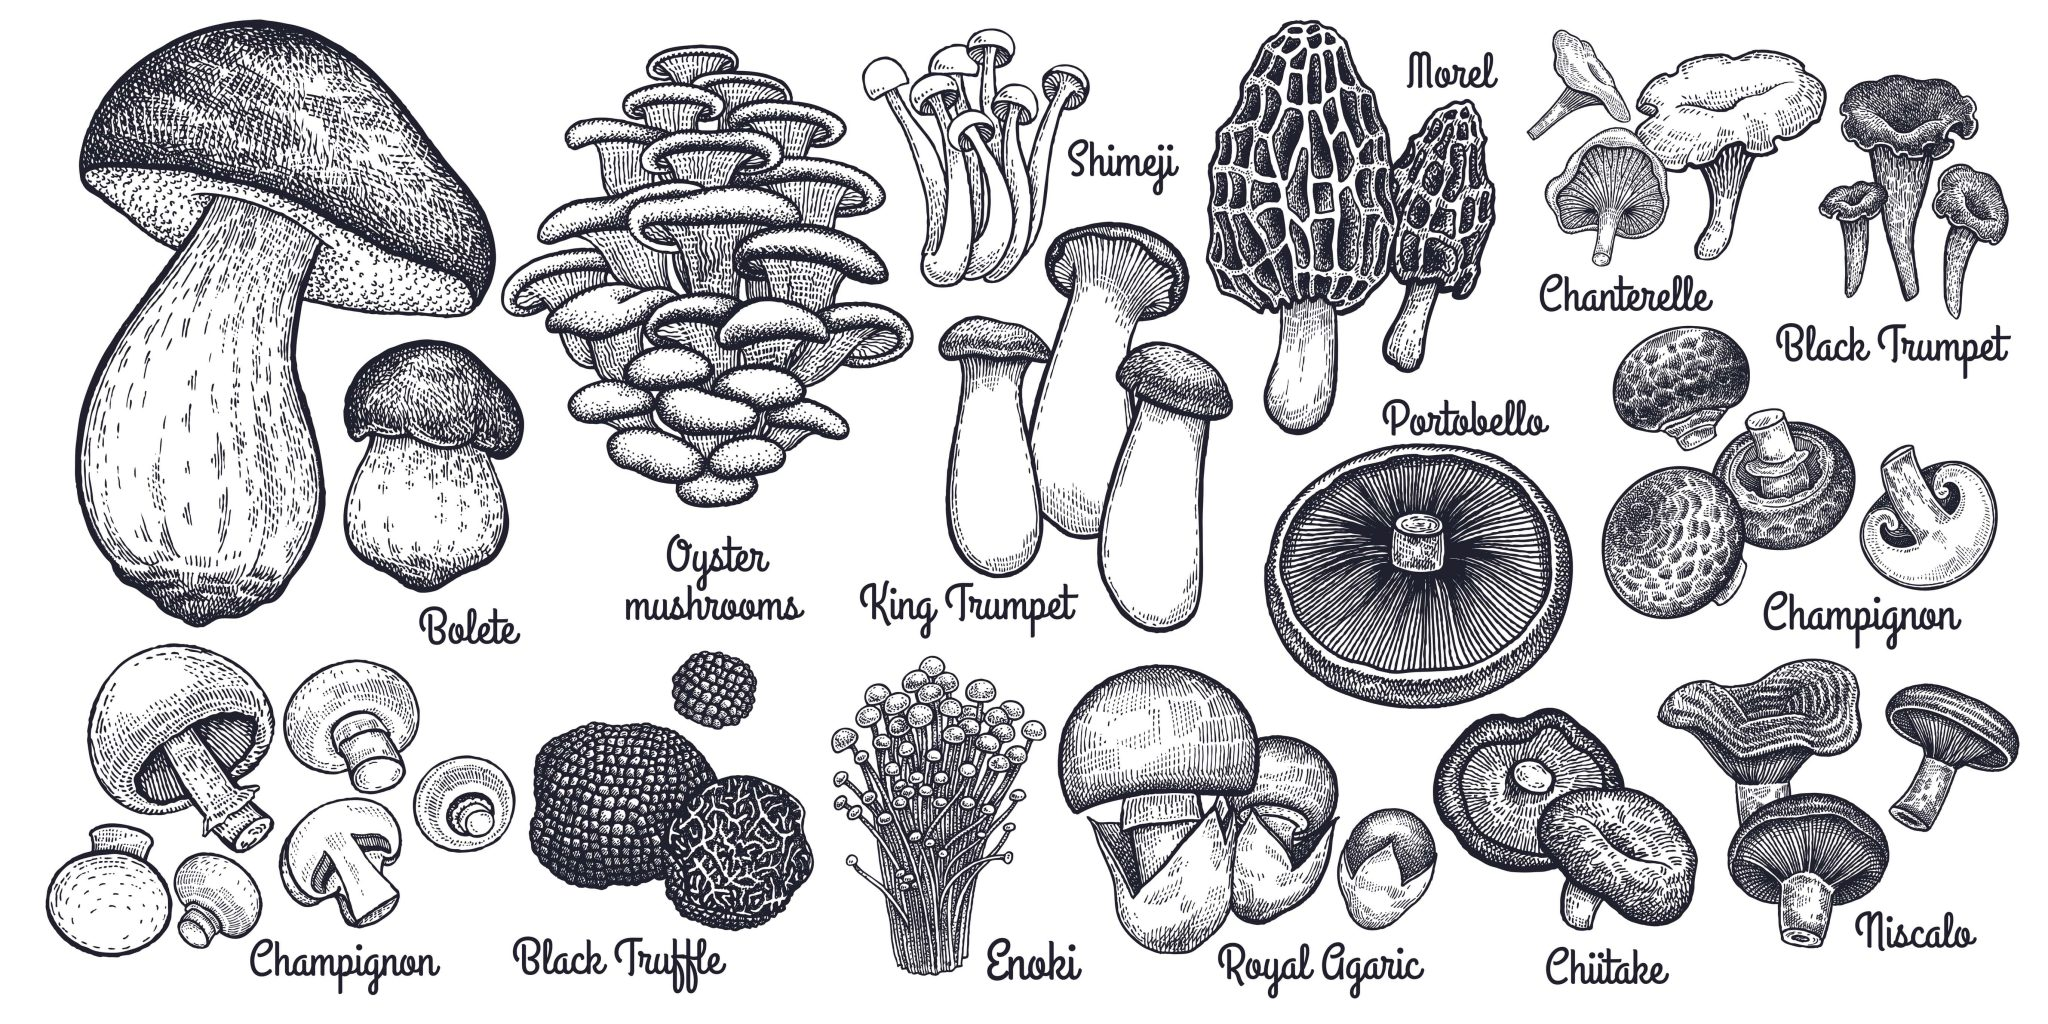 Two mushrooms per day could reduce cancer risk by 45%